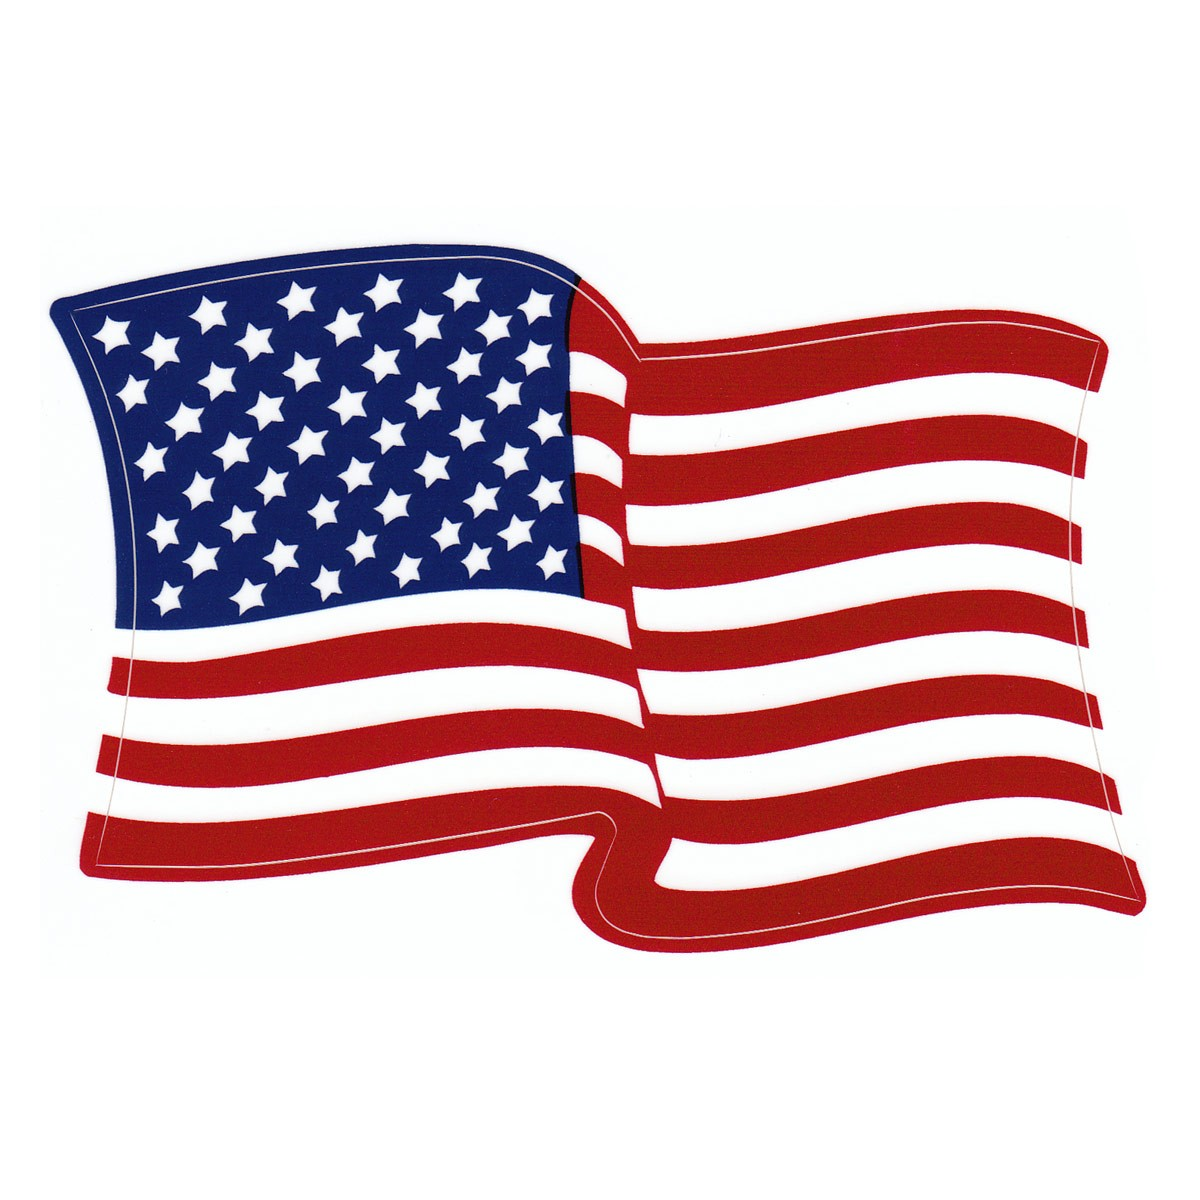 1200x1200 American Waving Flag Vinyl Decal